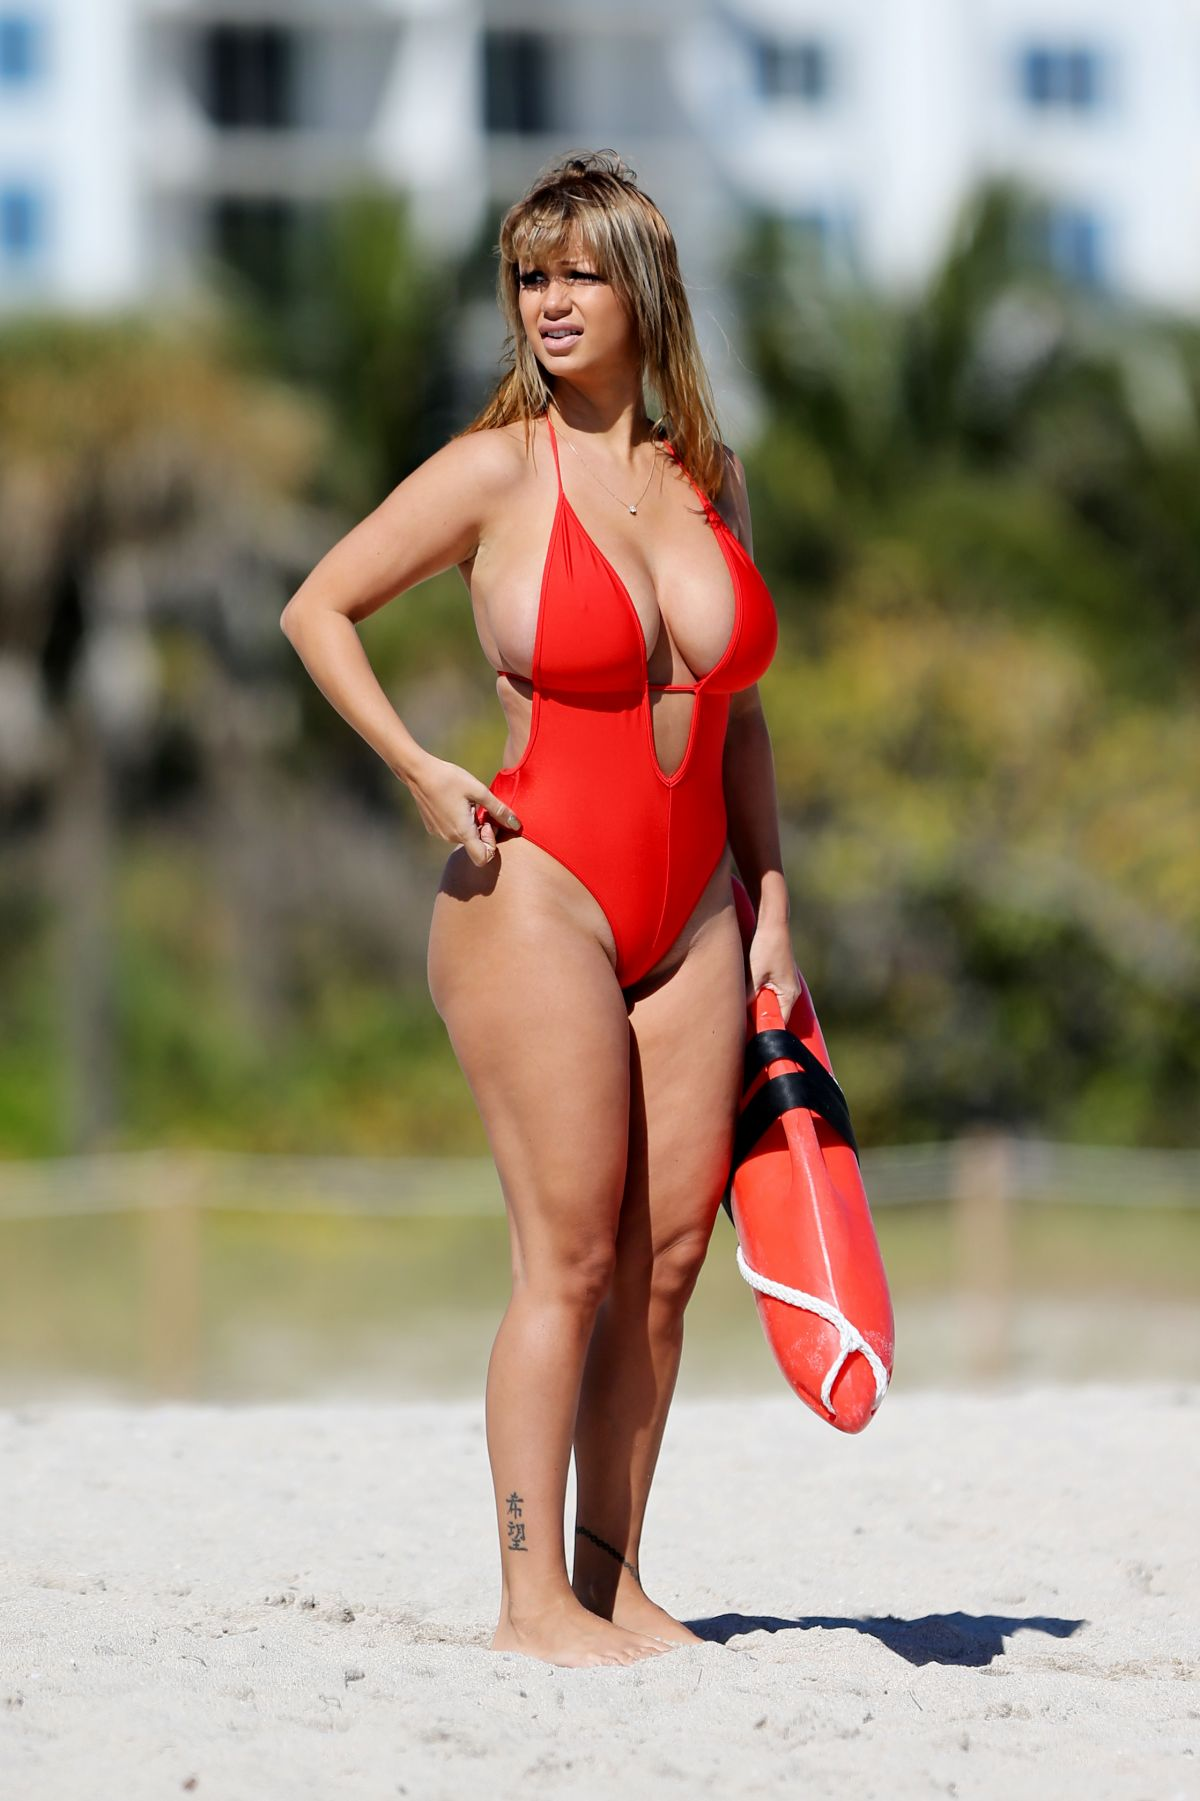 JOLENA FORDE in Baywatch Swimsuit at a Beach in Miami